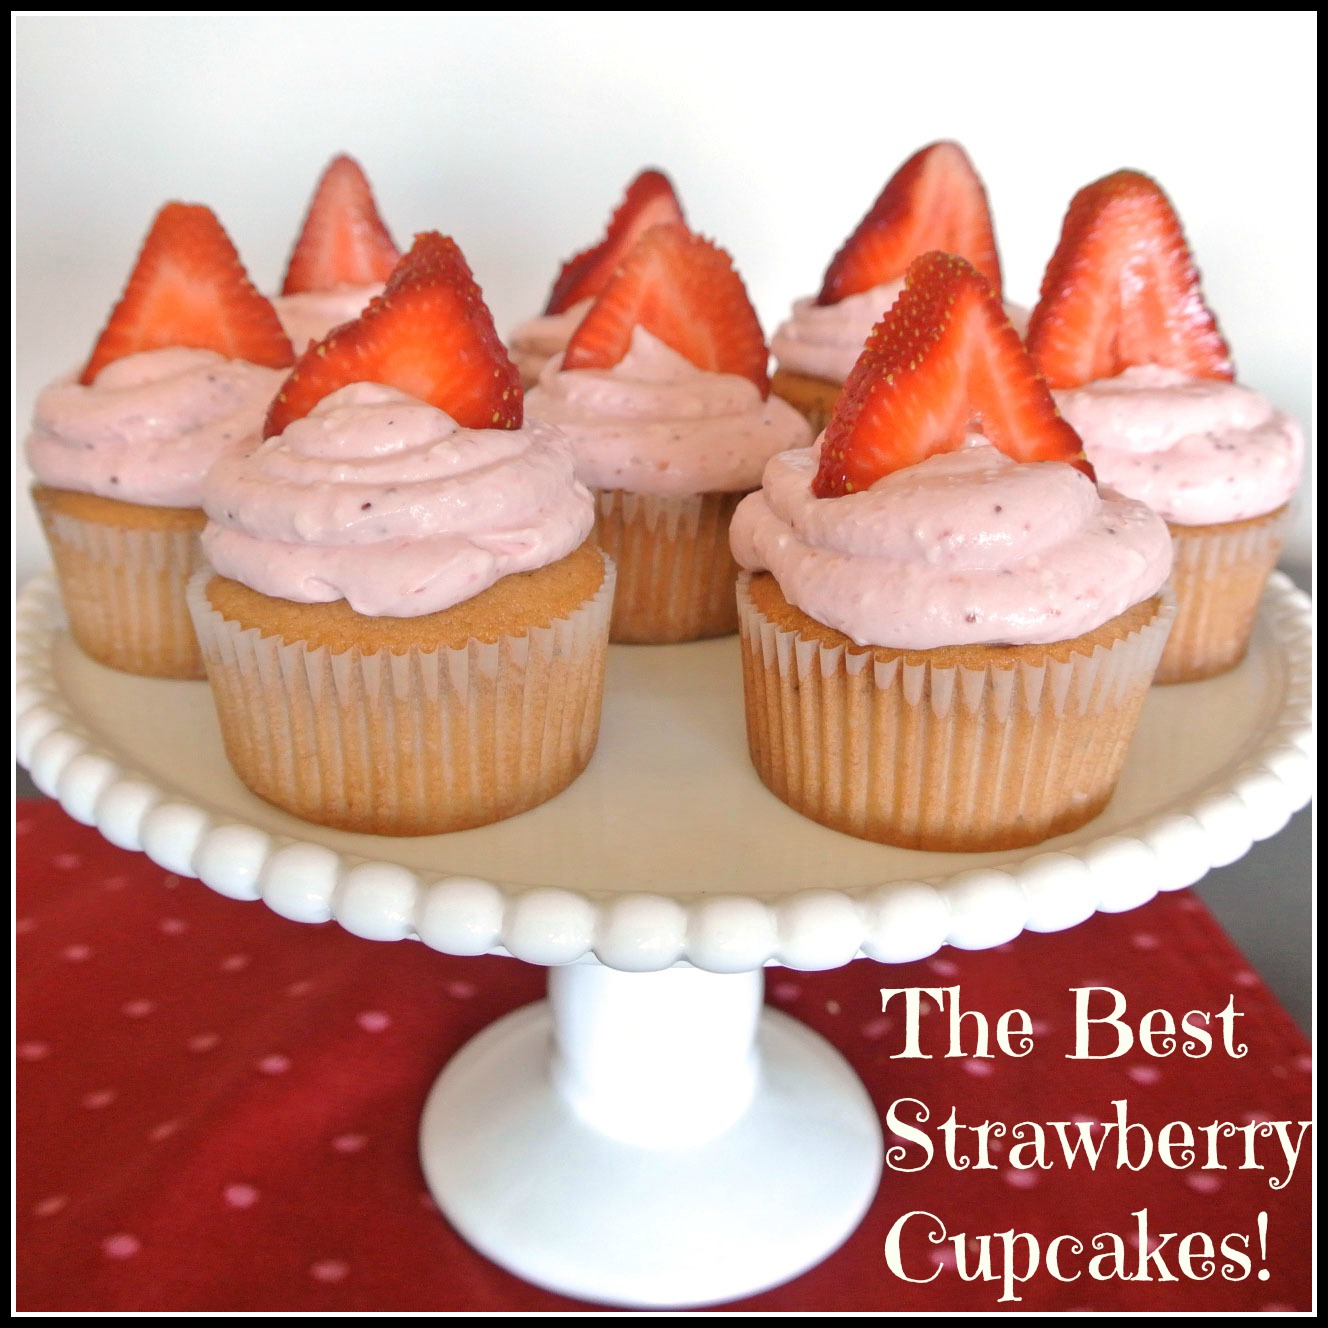 Best Strawberry Cupcakes